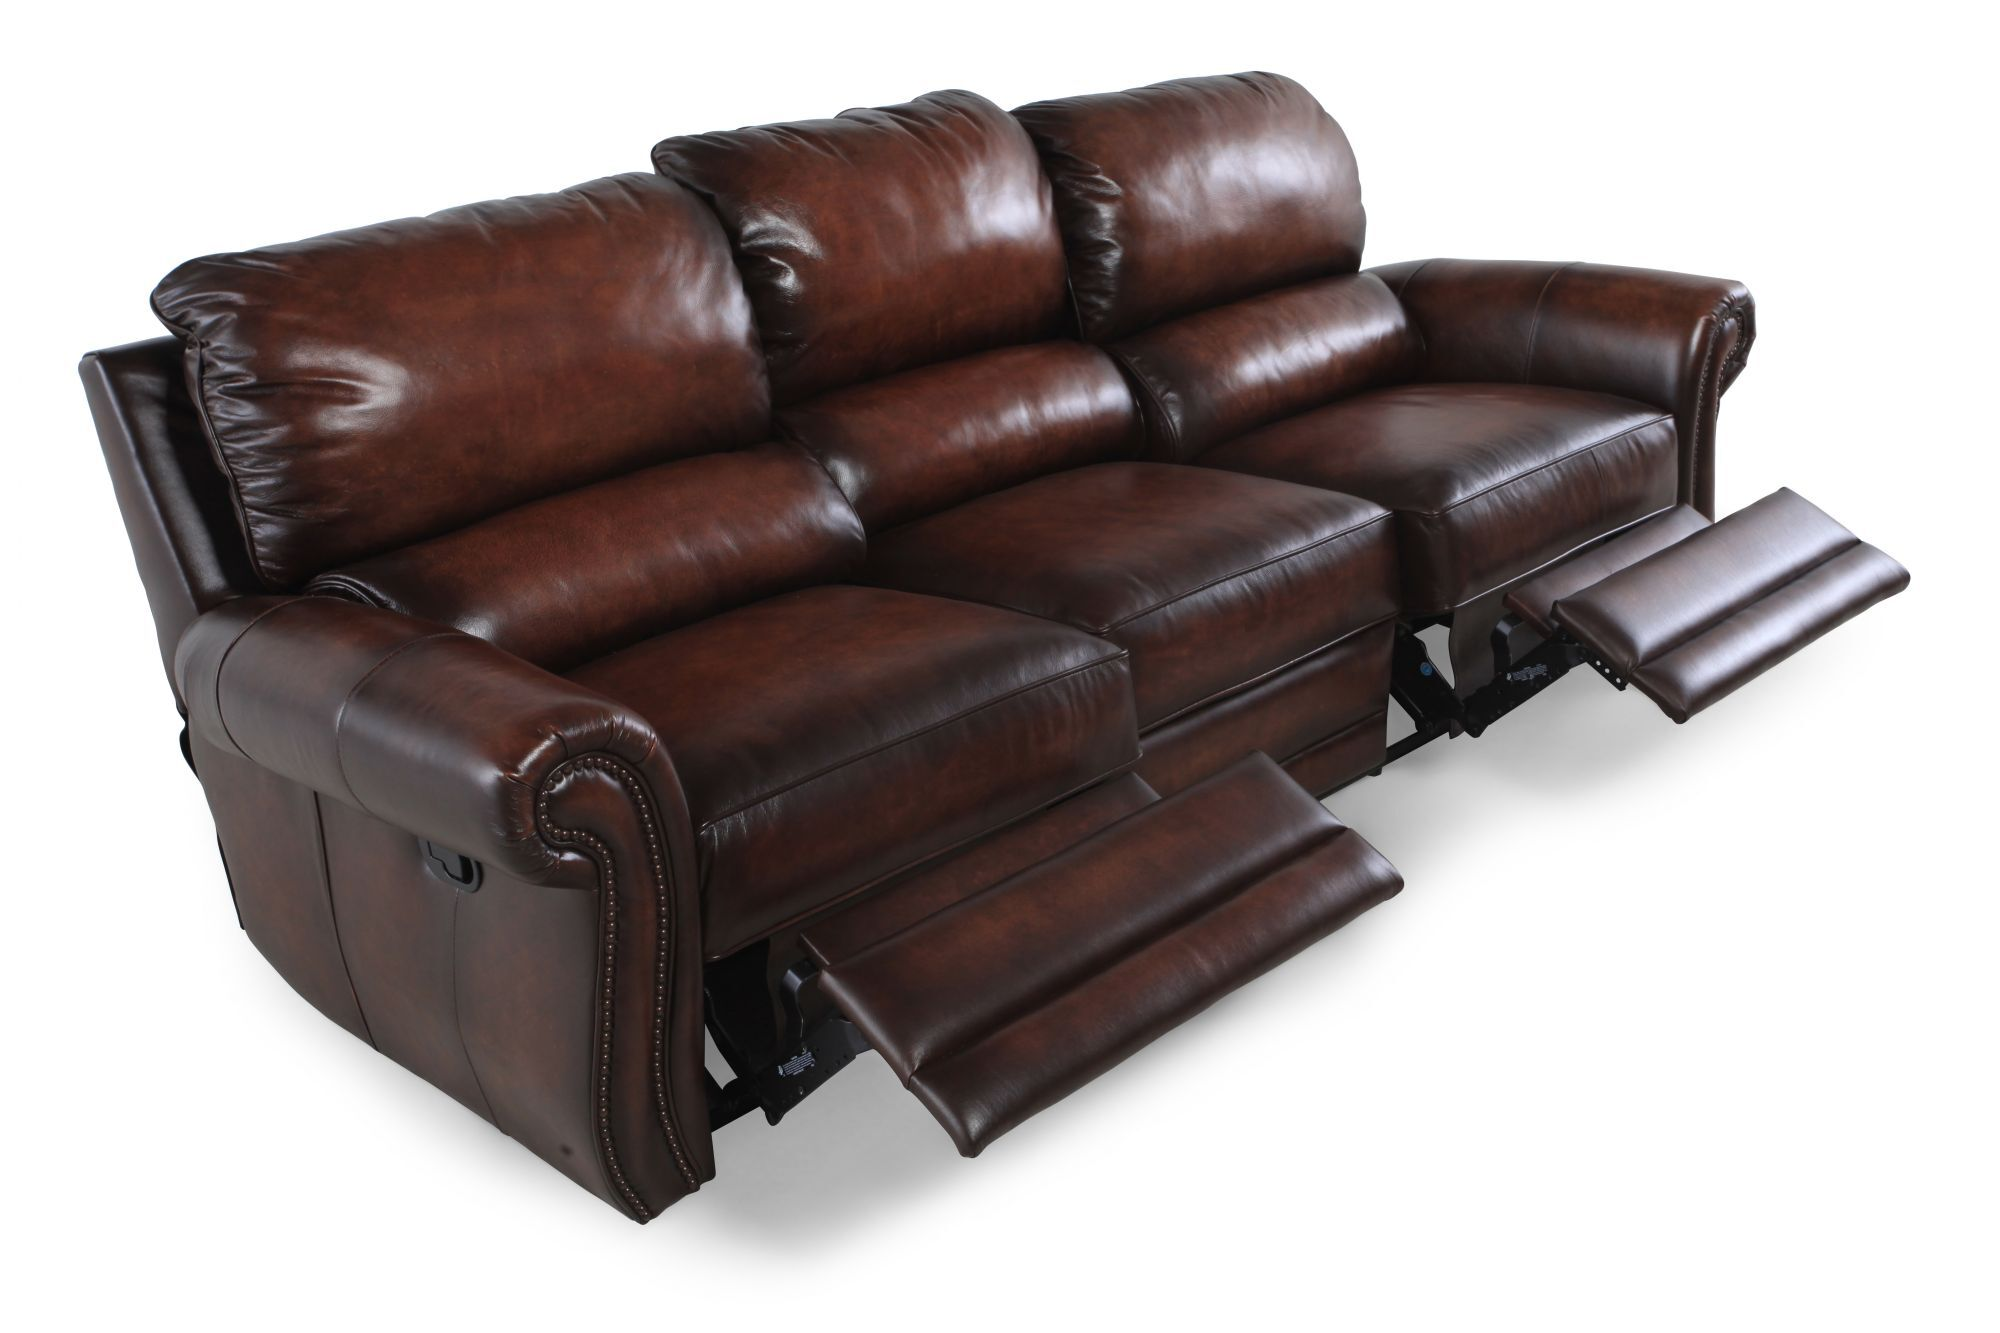 Leather Wall-Saver Reclining Sofa in Brown | Mathis ...